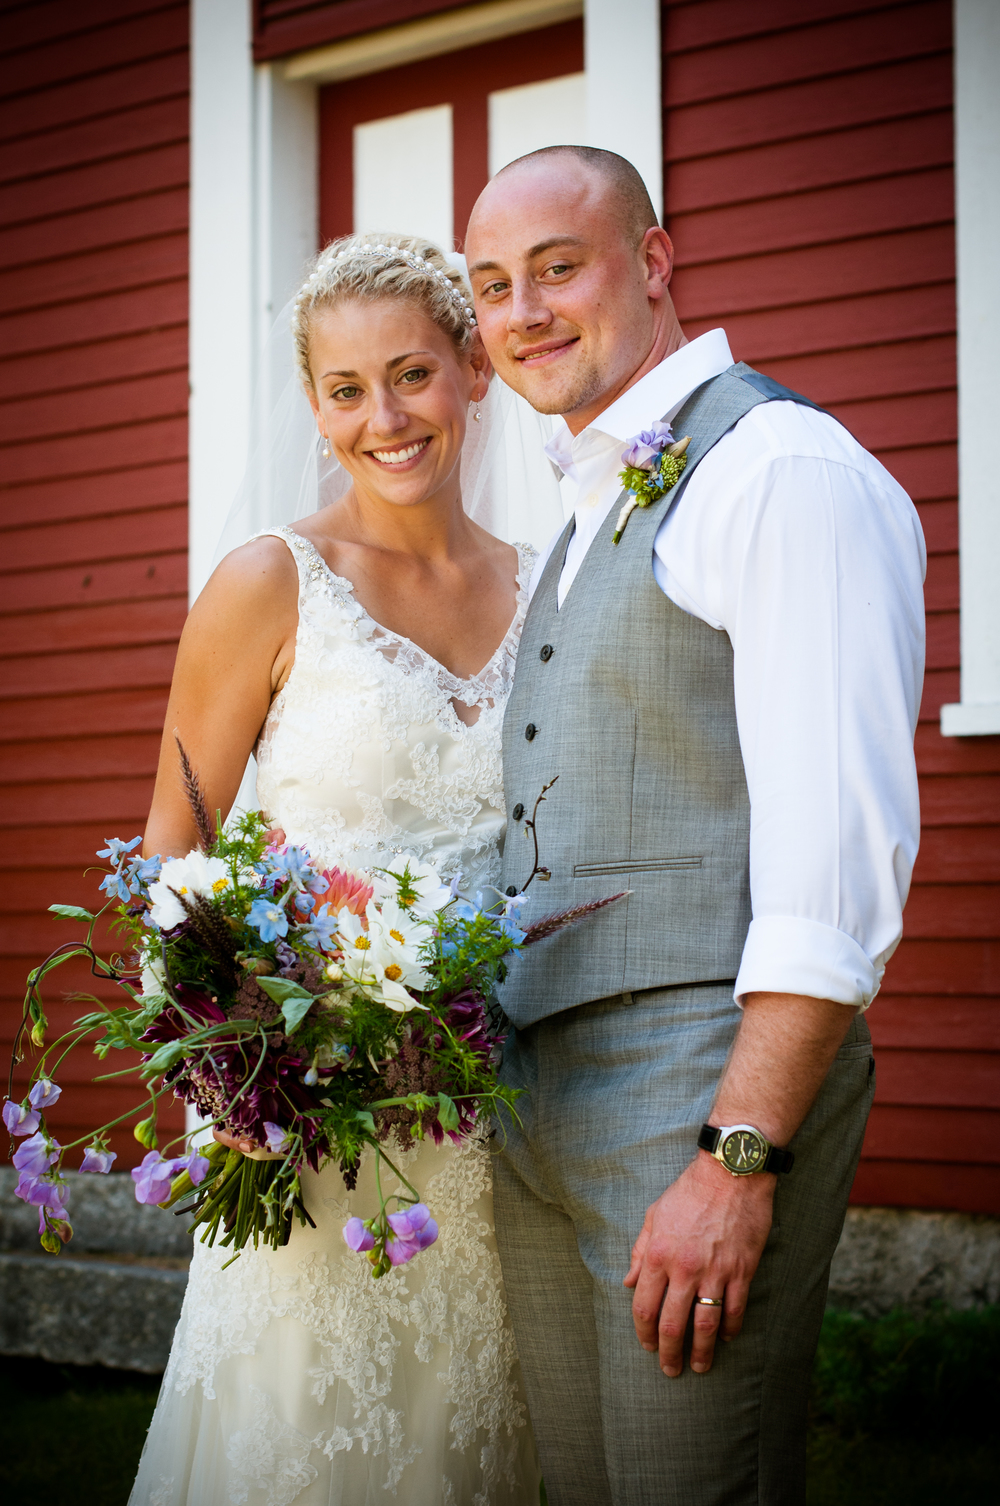 Dawn Witham and Tyler Wentland wedding ceremony photographed at Shapleigh Pond, Newfield Maine